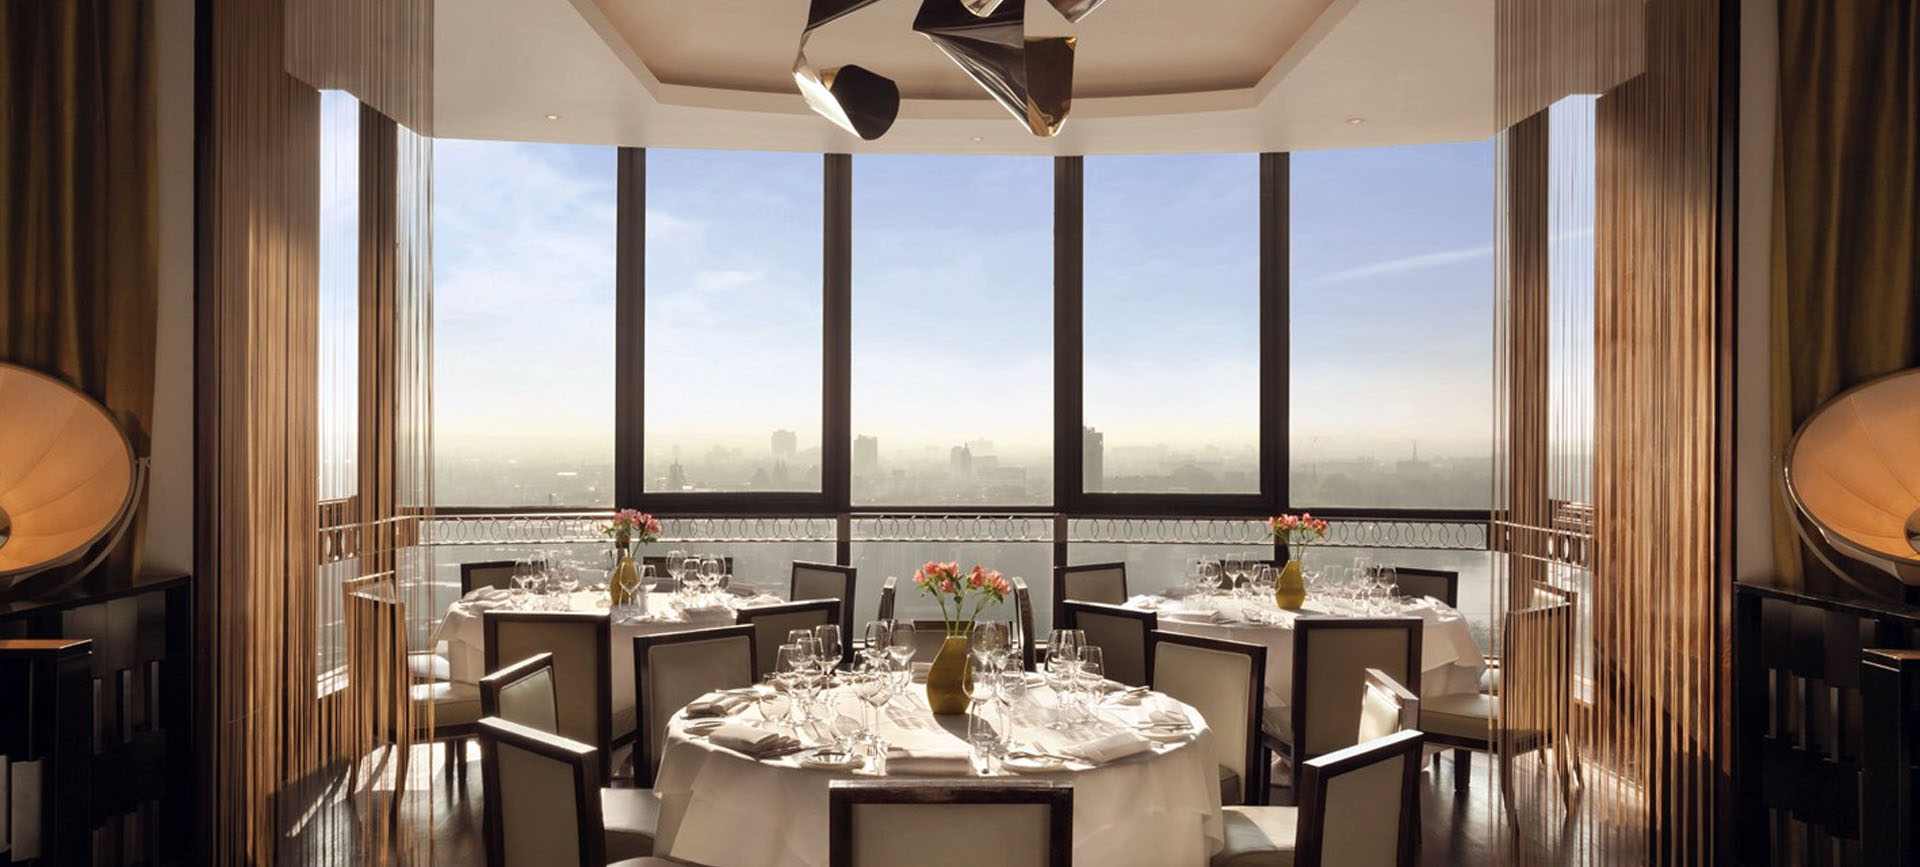 Dine in the sky on Park Lane